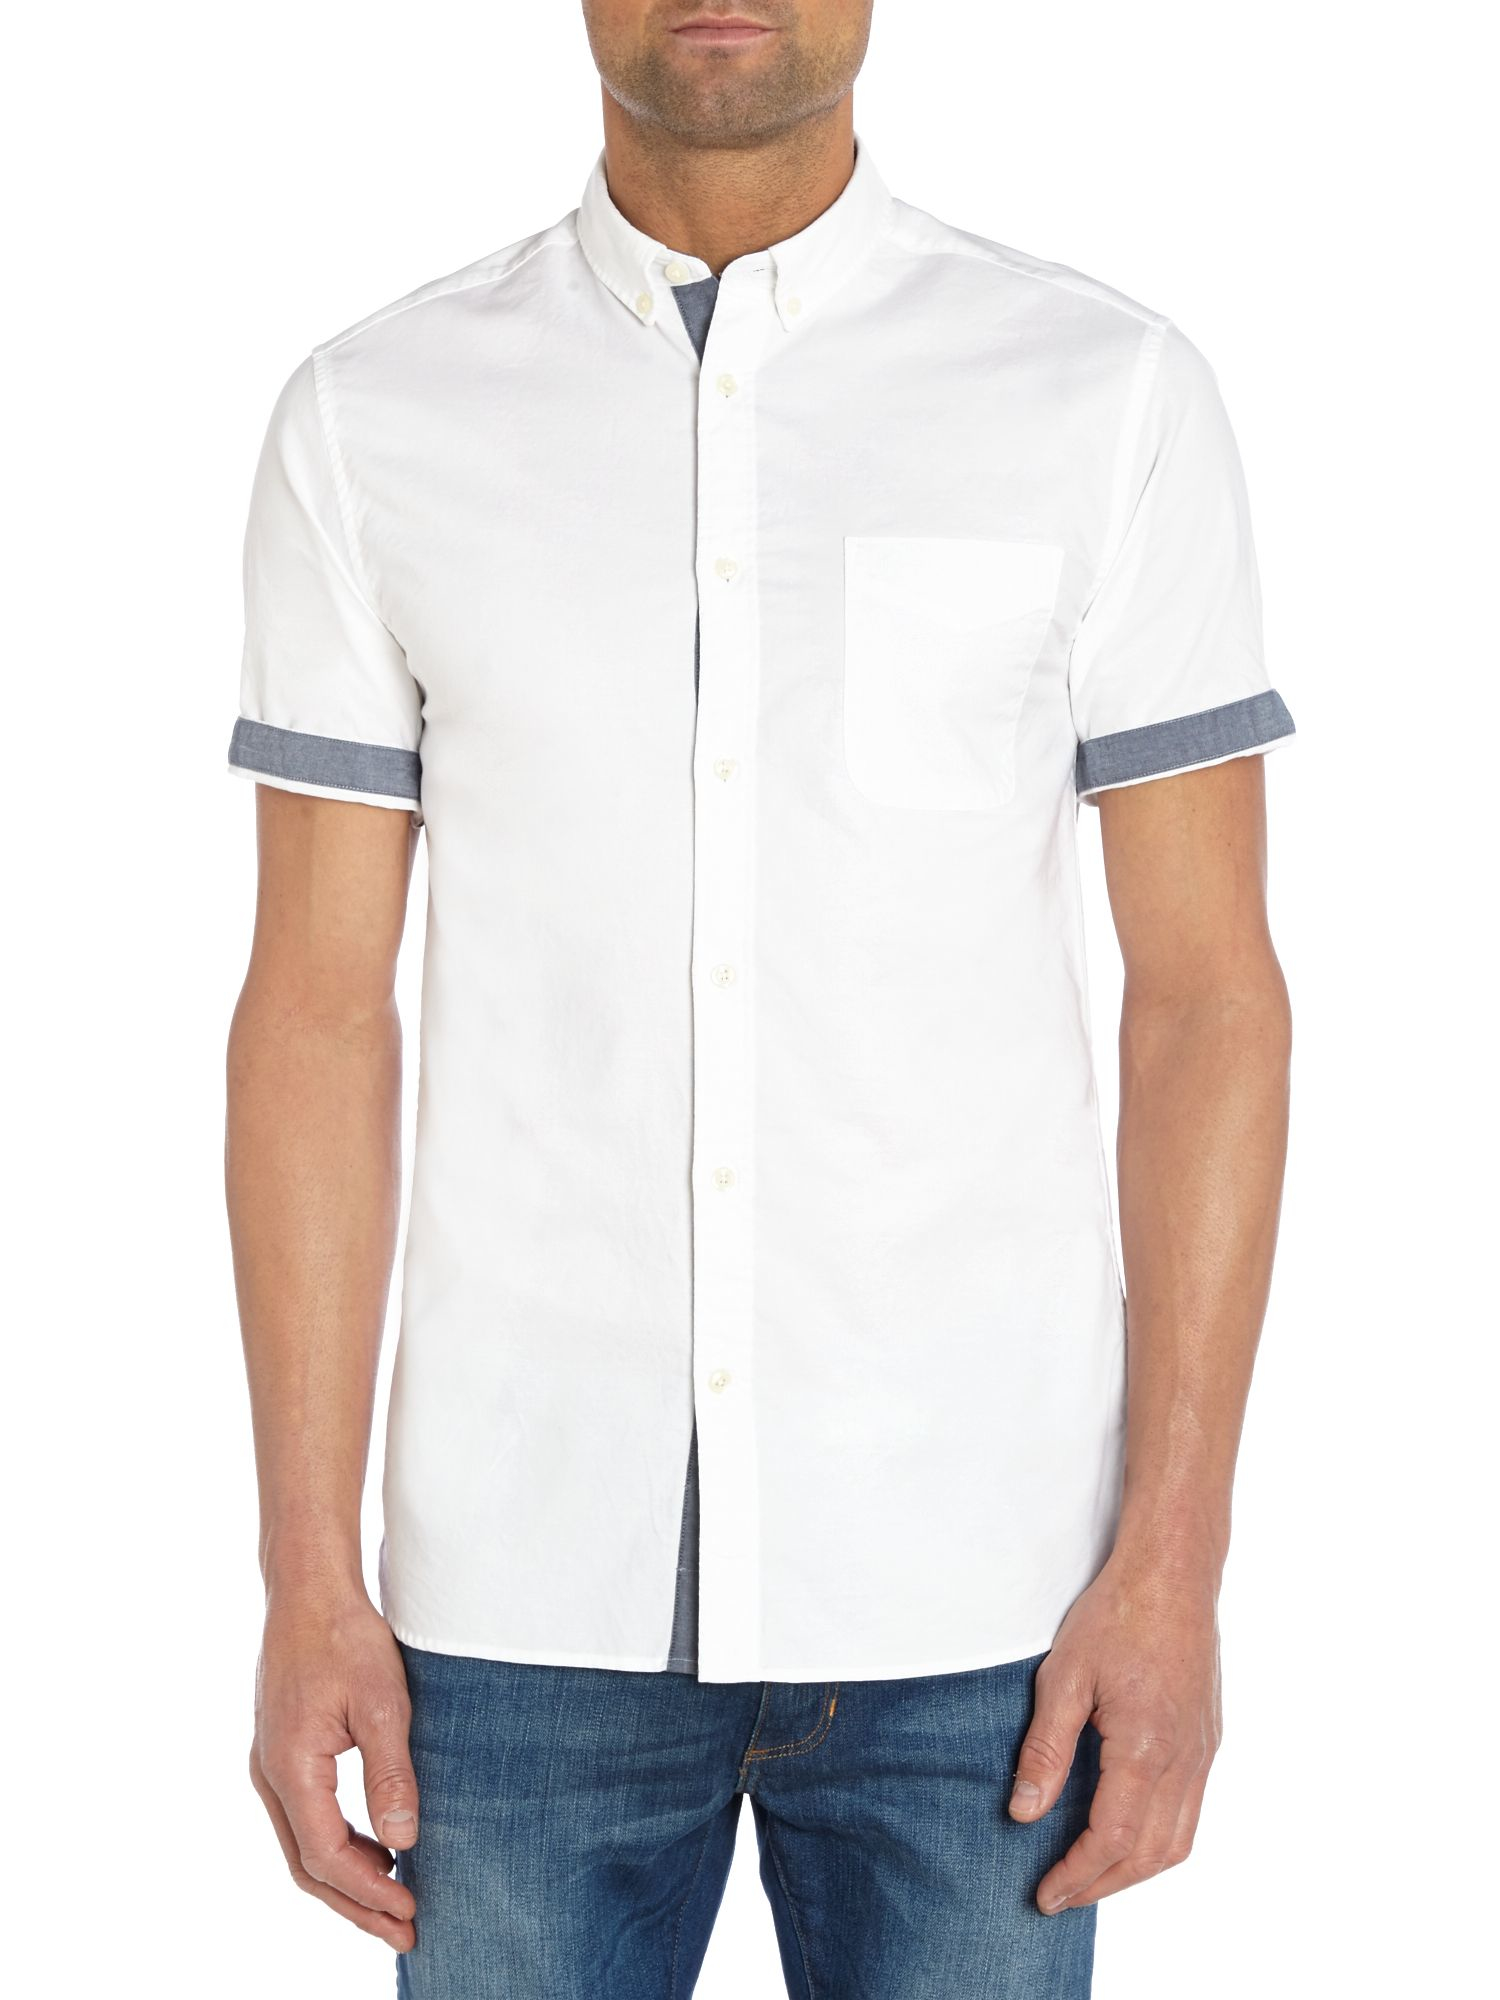 Jack & jones Slim Fit Button Down Short Sleeve Shirt in White for ...